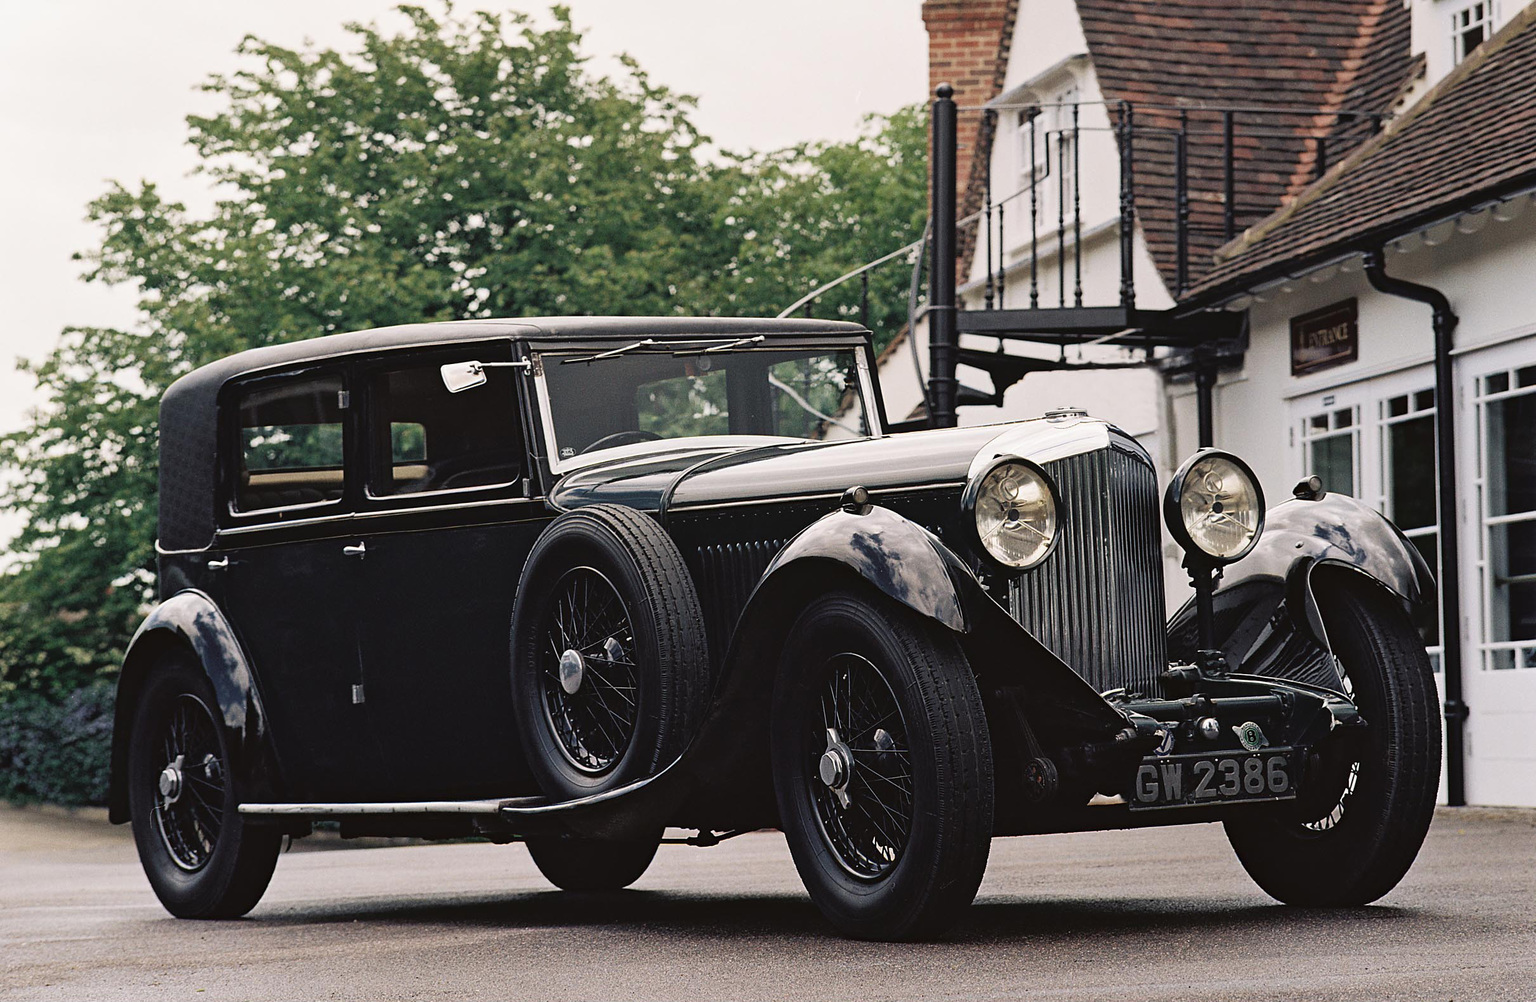 2016 Bentley litre photo - 2